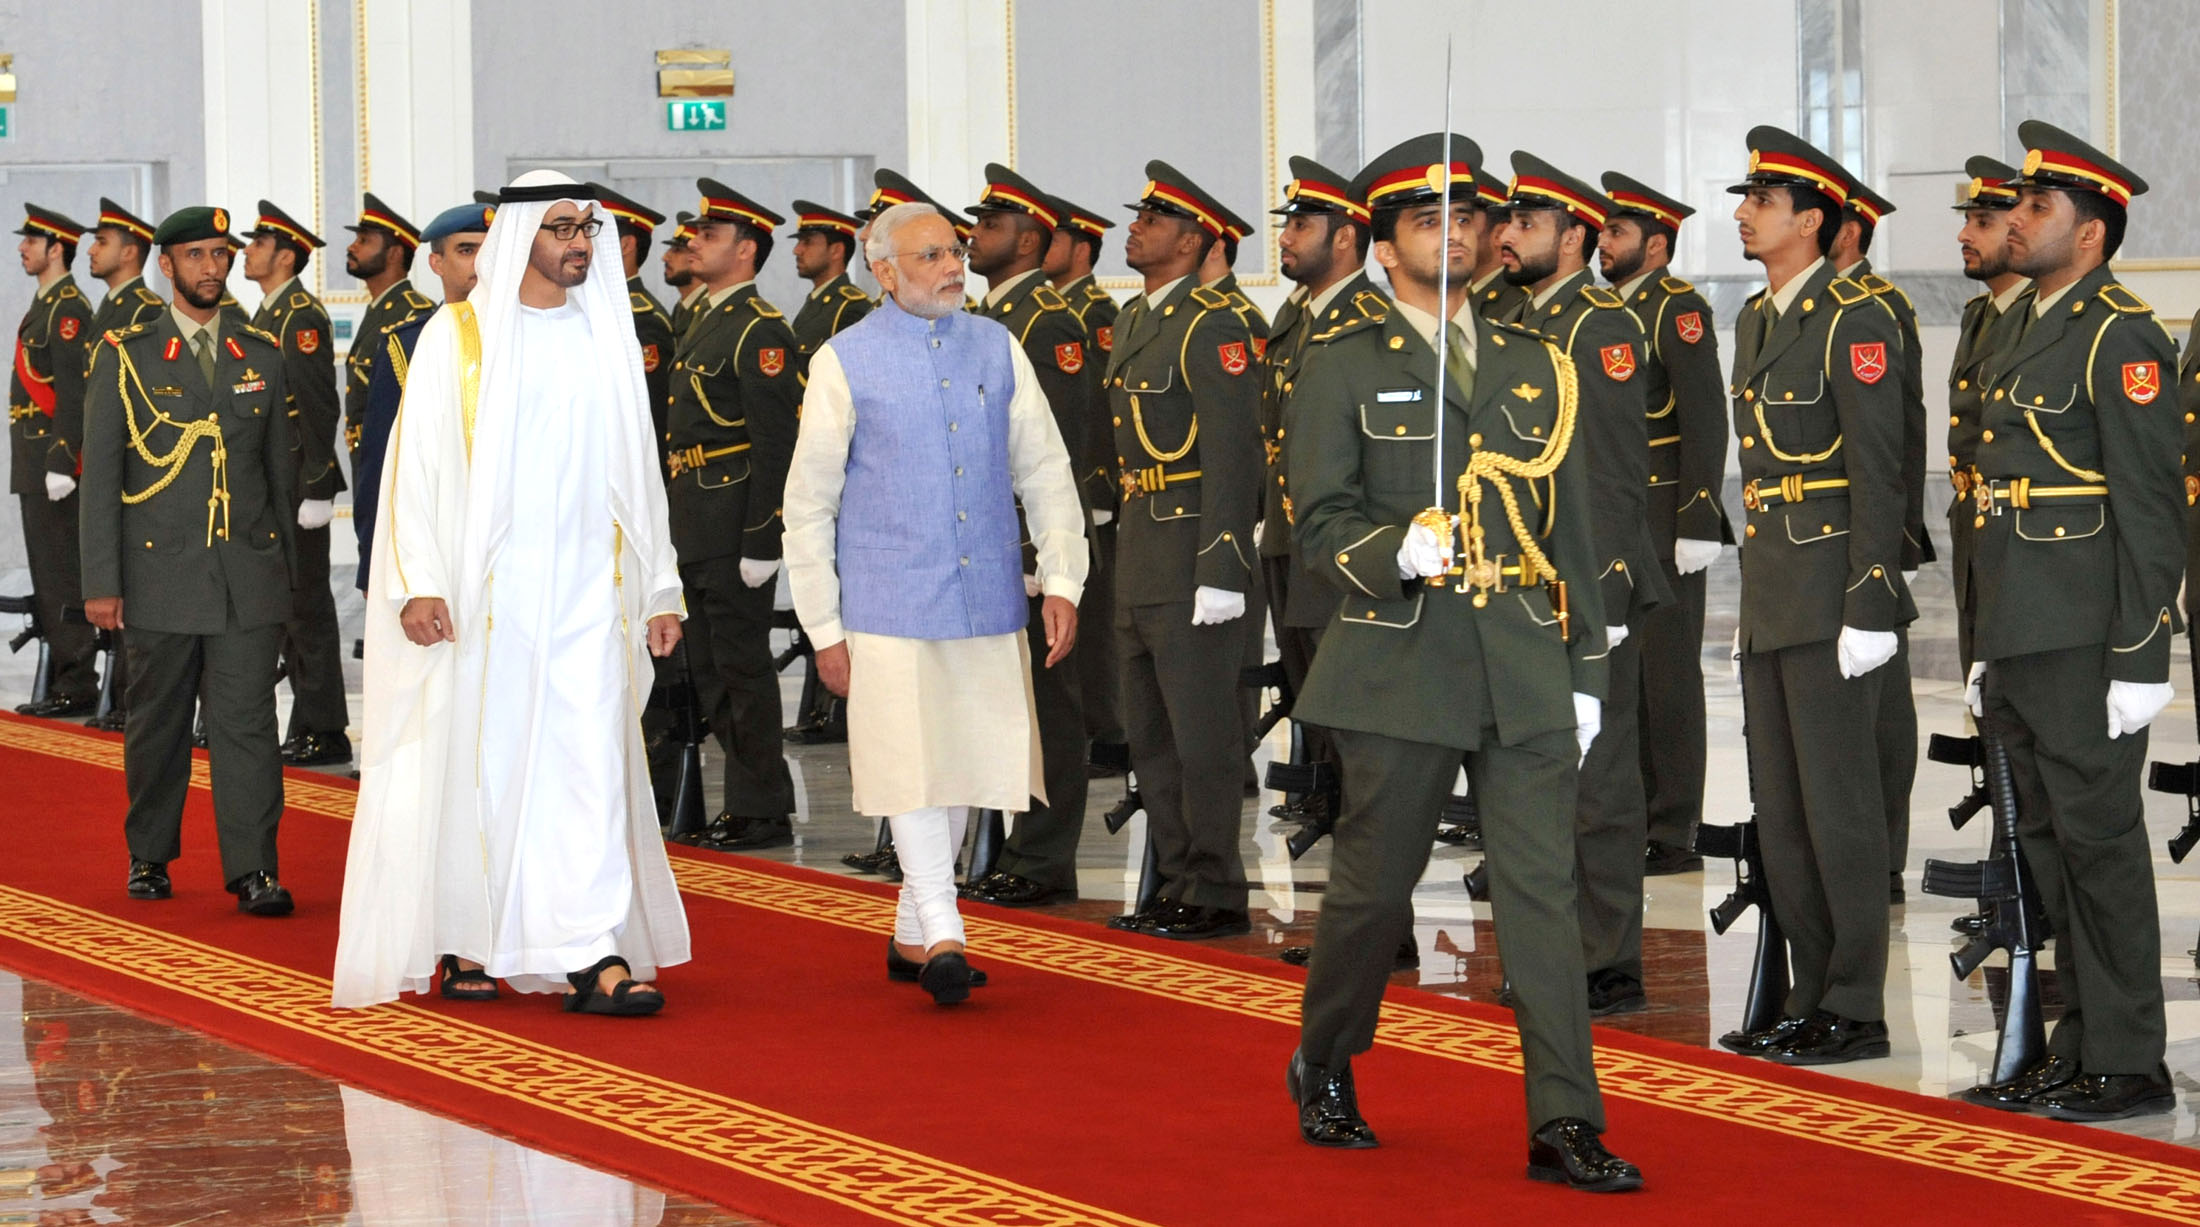 Indian Prime Minister Narendra Modi inspecting the Guard of Honour on his arrival at Abu Dhabi. Crown Prince of Abu Dhabi, His Highness Sheikh Mohammed bin Zayed Al Nahyan is also accompanying him during his previous visit to UAE.